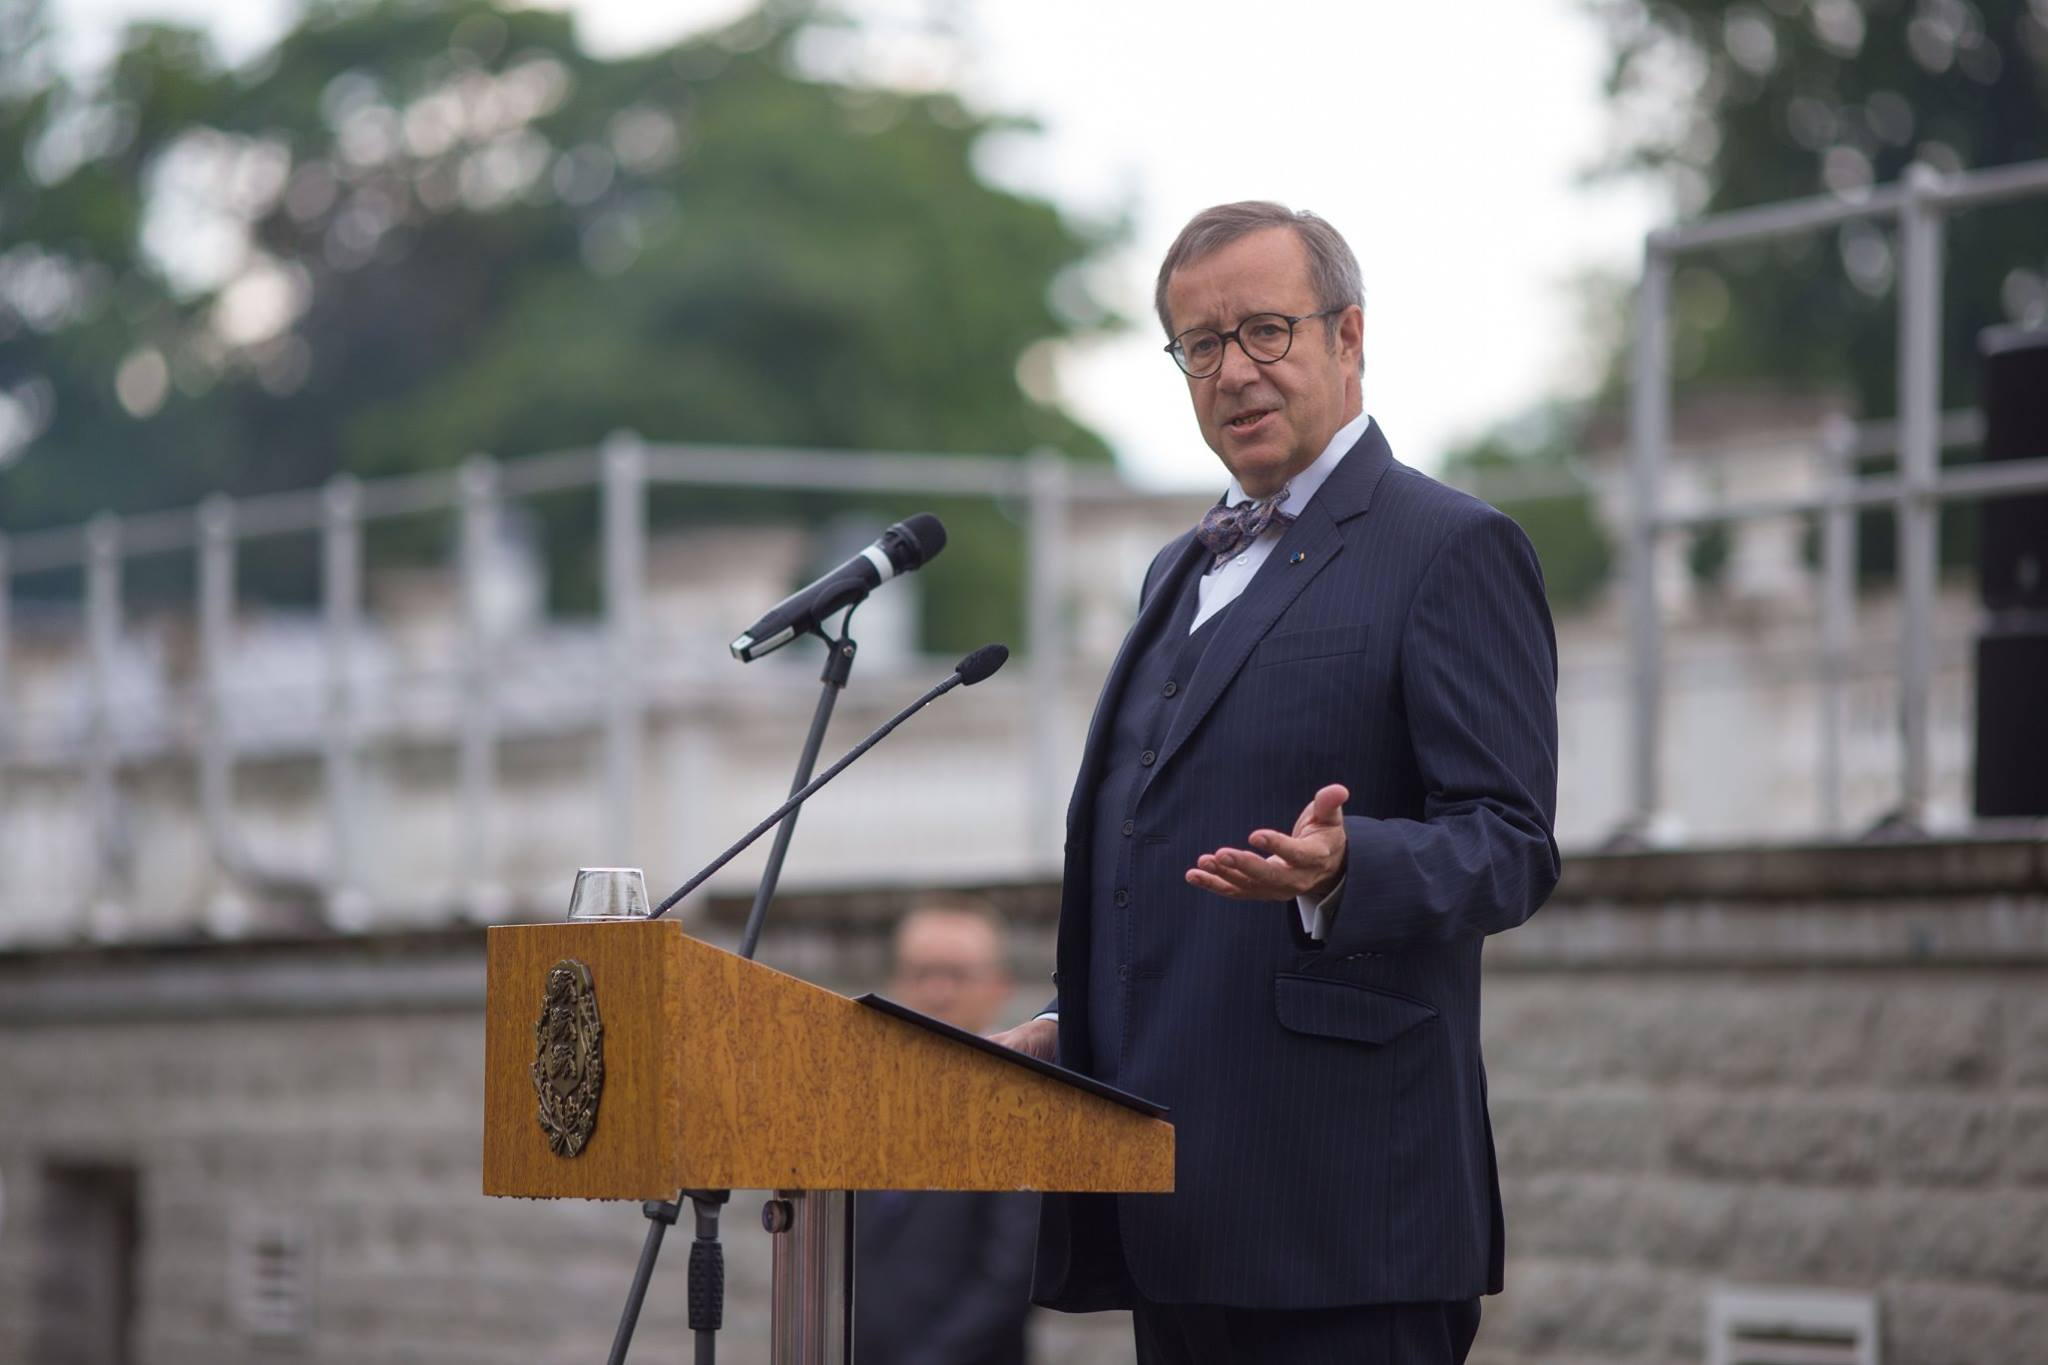 Estonian president Toomas Hendrik Ilves pushed back against Trump's notion that Estonia hasn't 'fulfilled its obligations' to NATO. (Facebook)